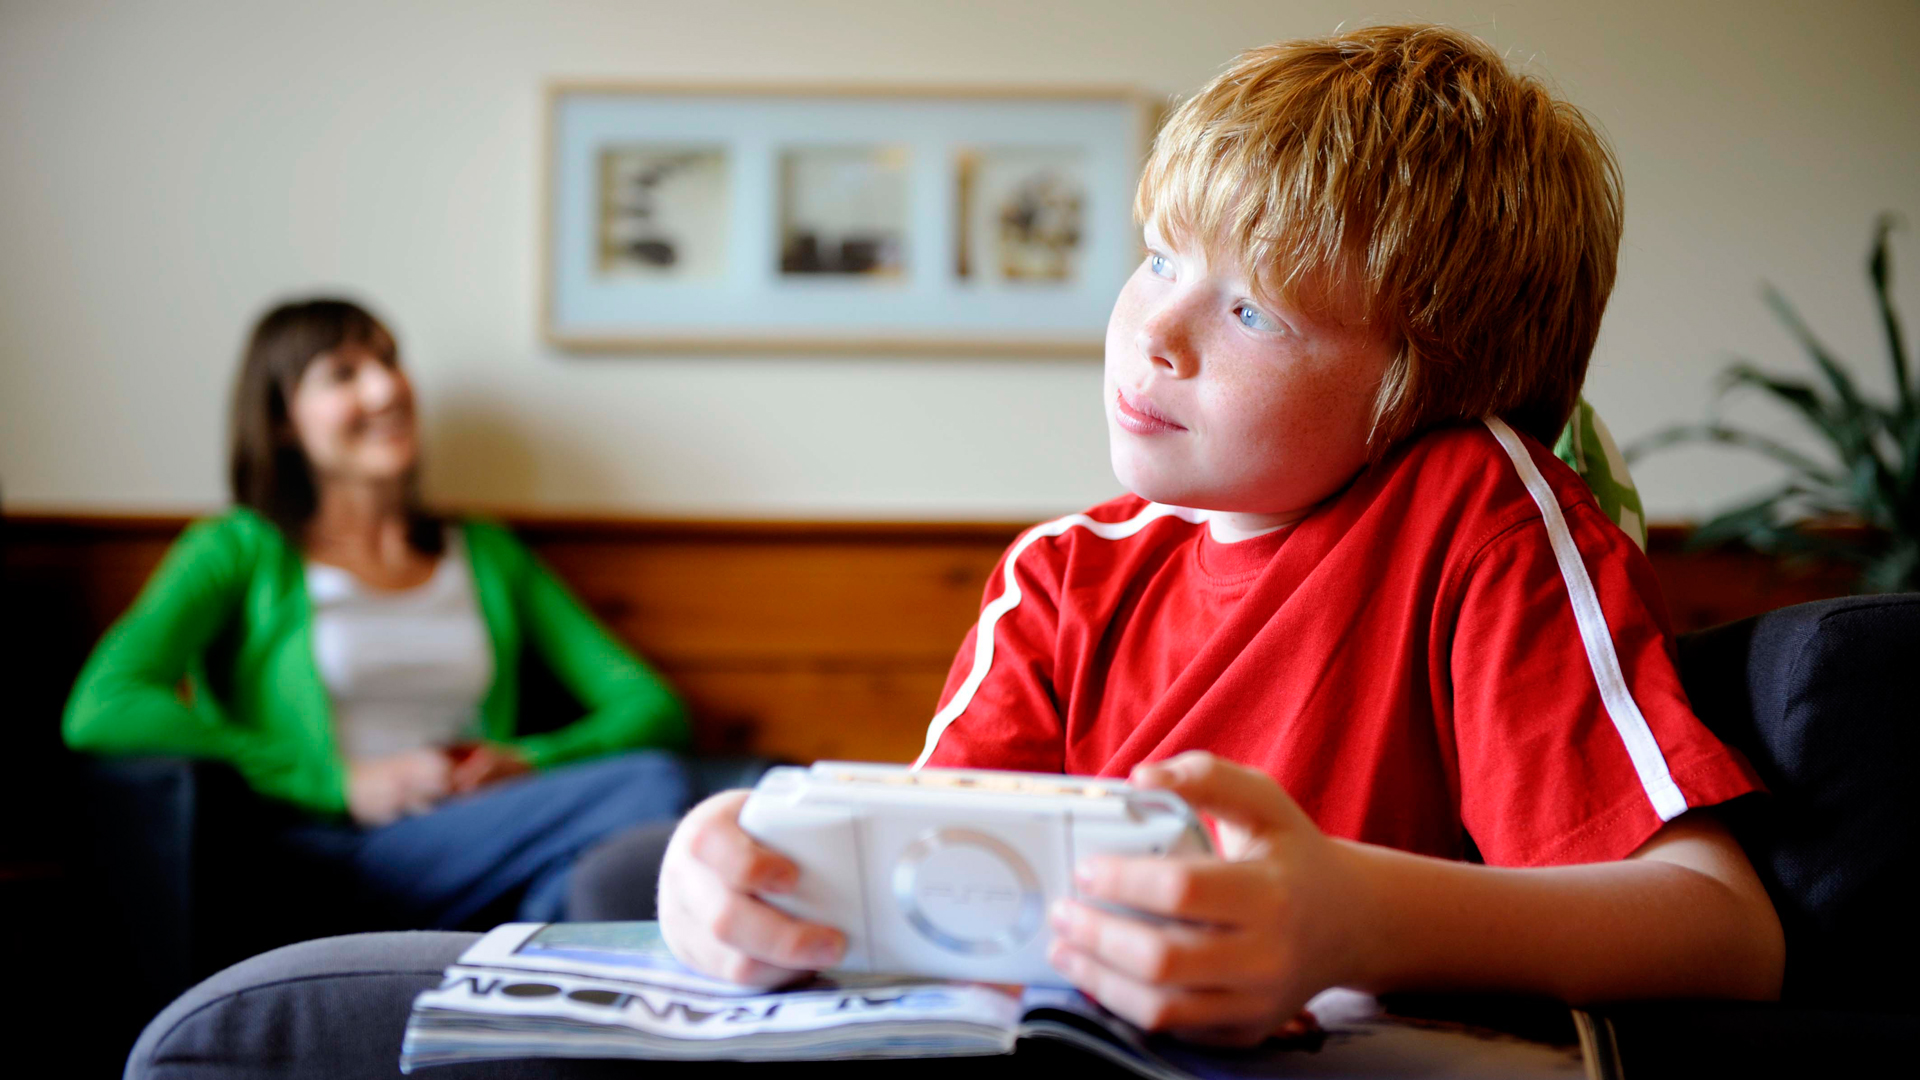 kids using technology not being active